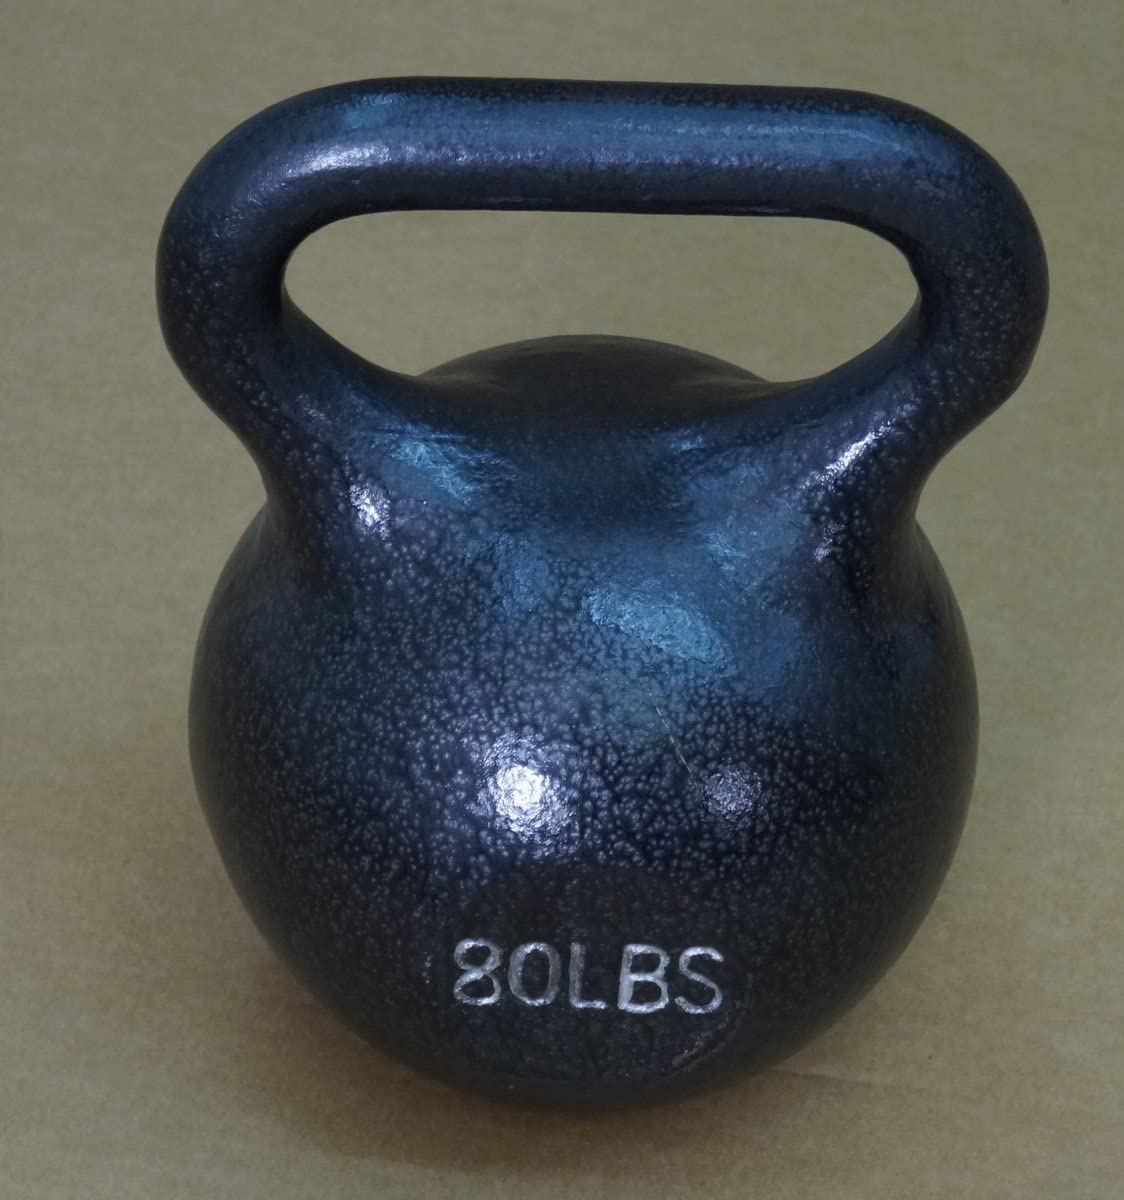 TDS 80 lb Wide Handle Kettlebell